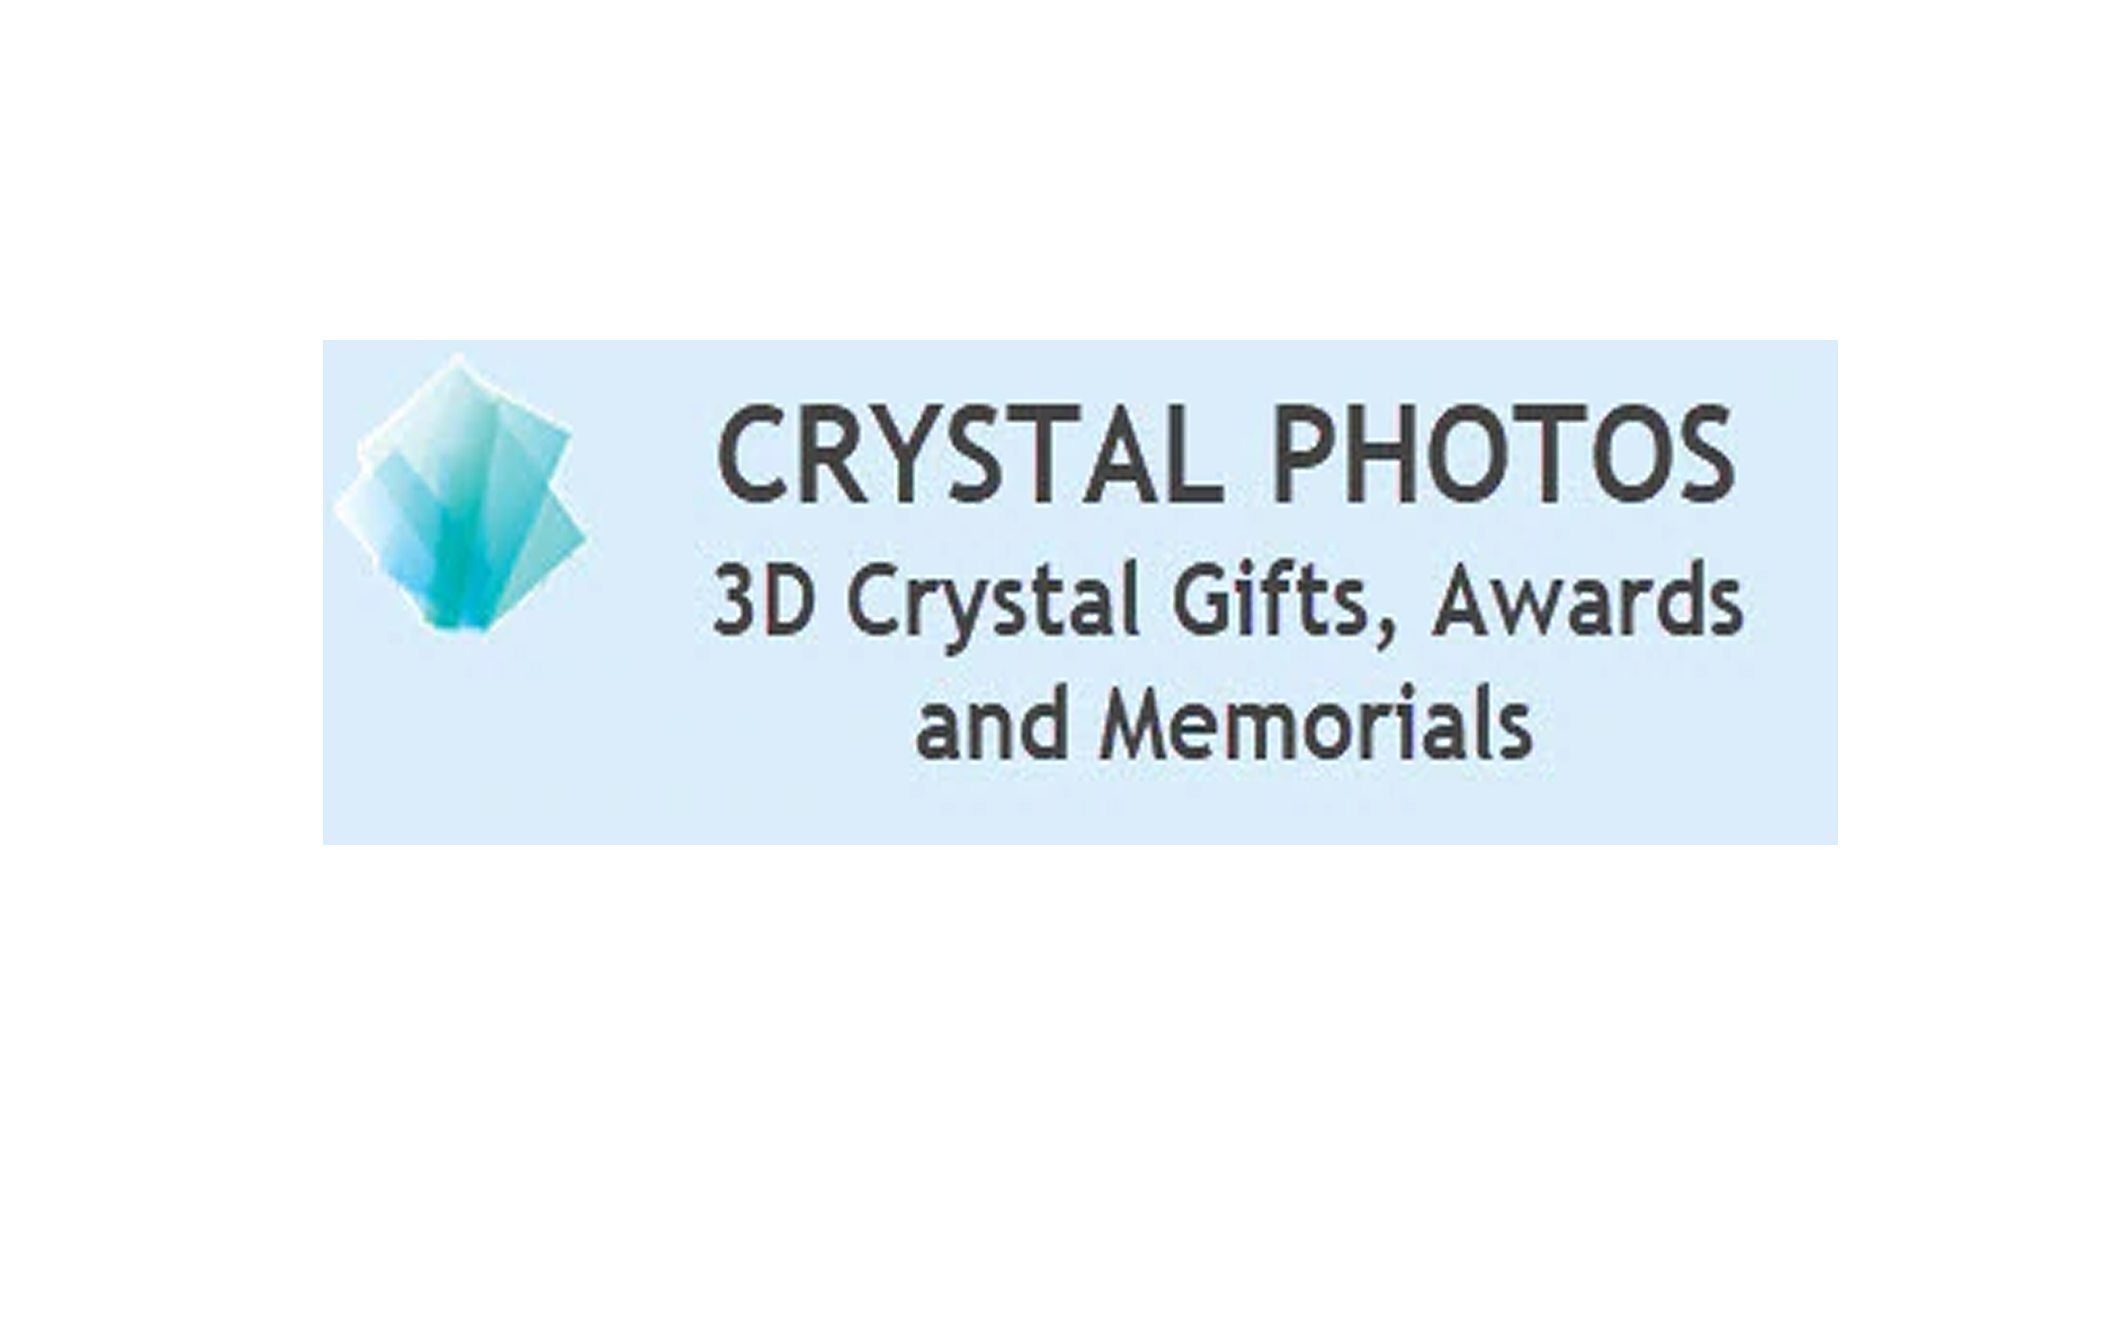 Crystal Photos Nz coupons